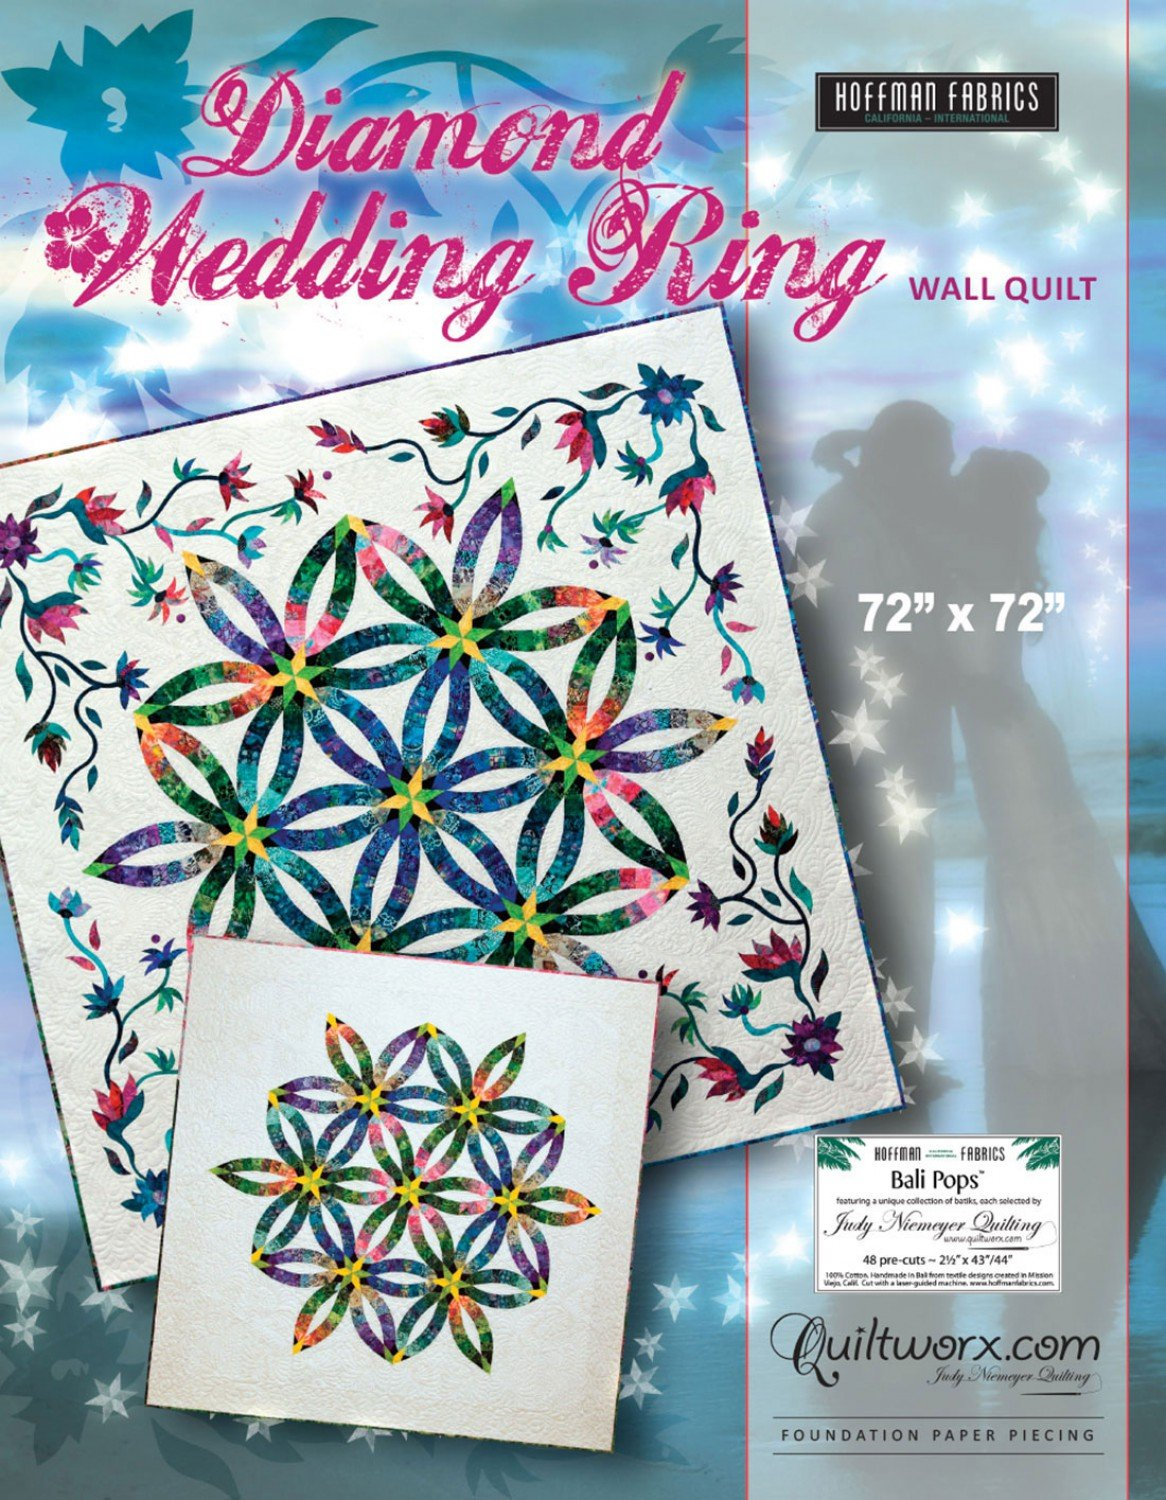 Diamond Wedding Ring Wall Quilt Foundation Paper Pieced 72in x 72in Quilt Pattern by Judy Niemeyer Quilting